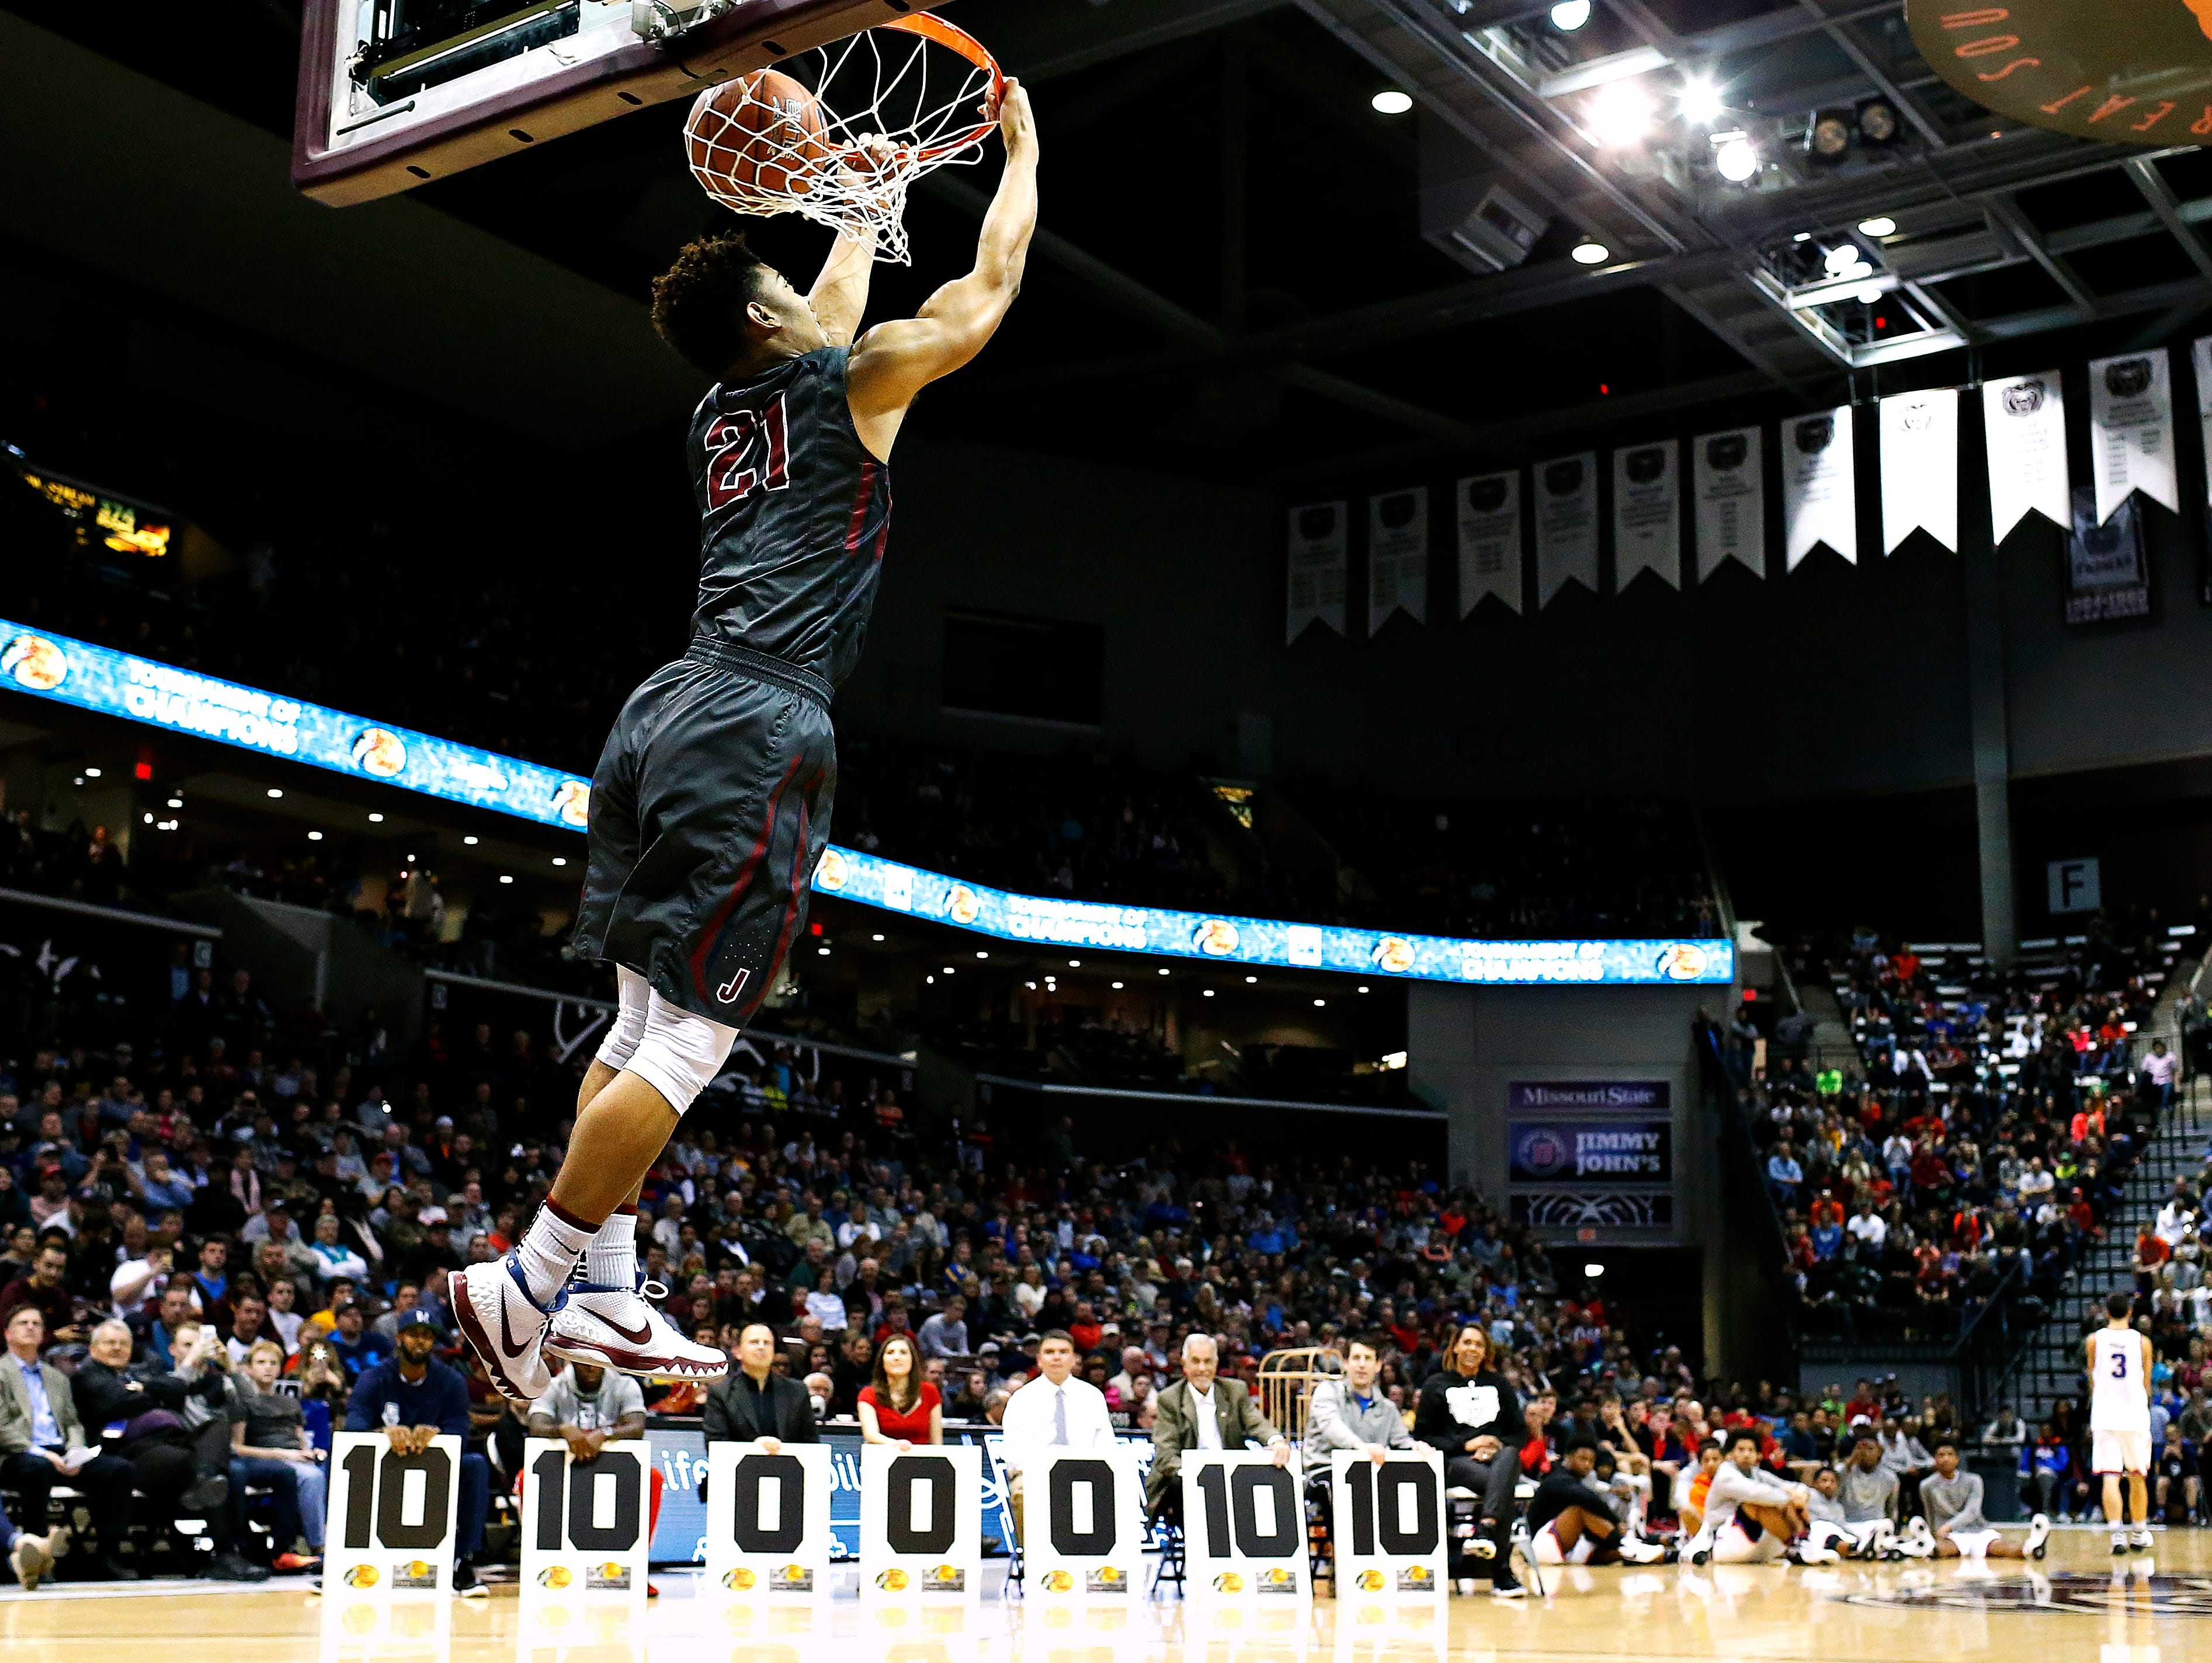 Darrian Guillory of Joplin High School (Joplin, Mo.) dunks during the dunk contest portion of the 2016 Tournament of Champions at JQH Arena in Springfield, Mo. on Jan. 15, 2015. Guillory won second place in the contest.